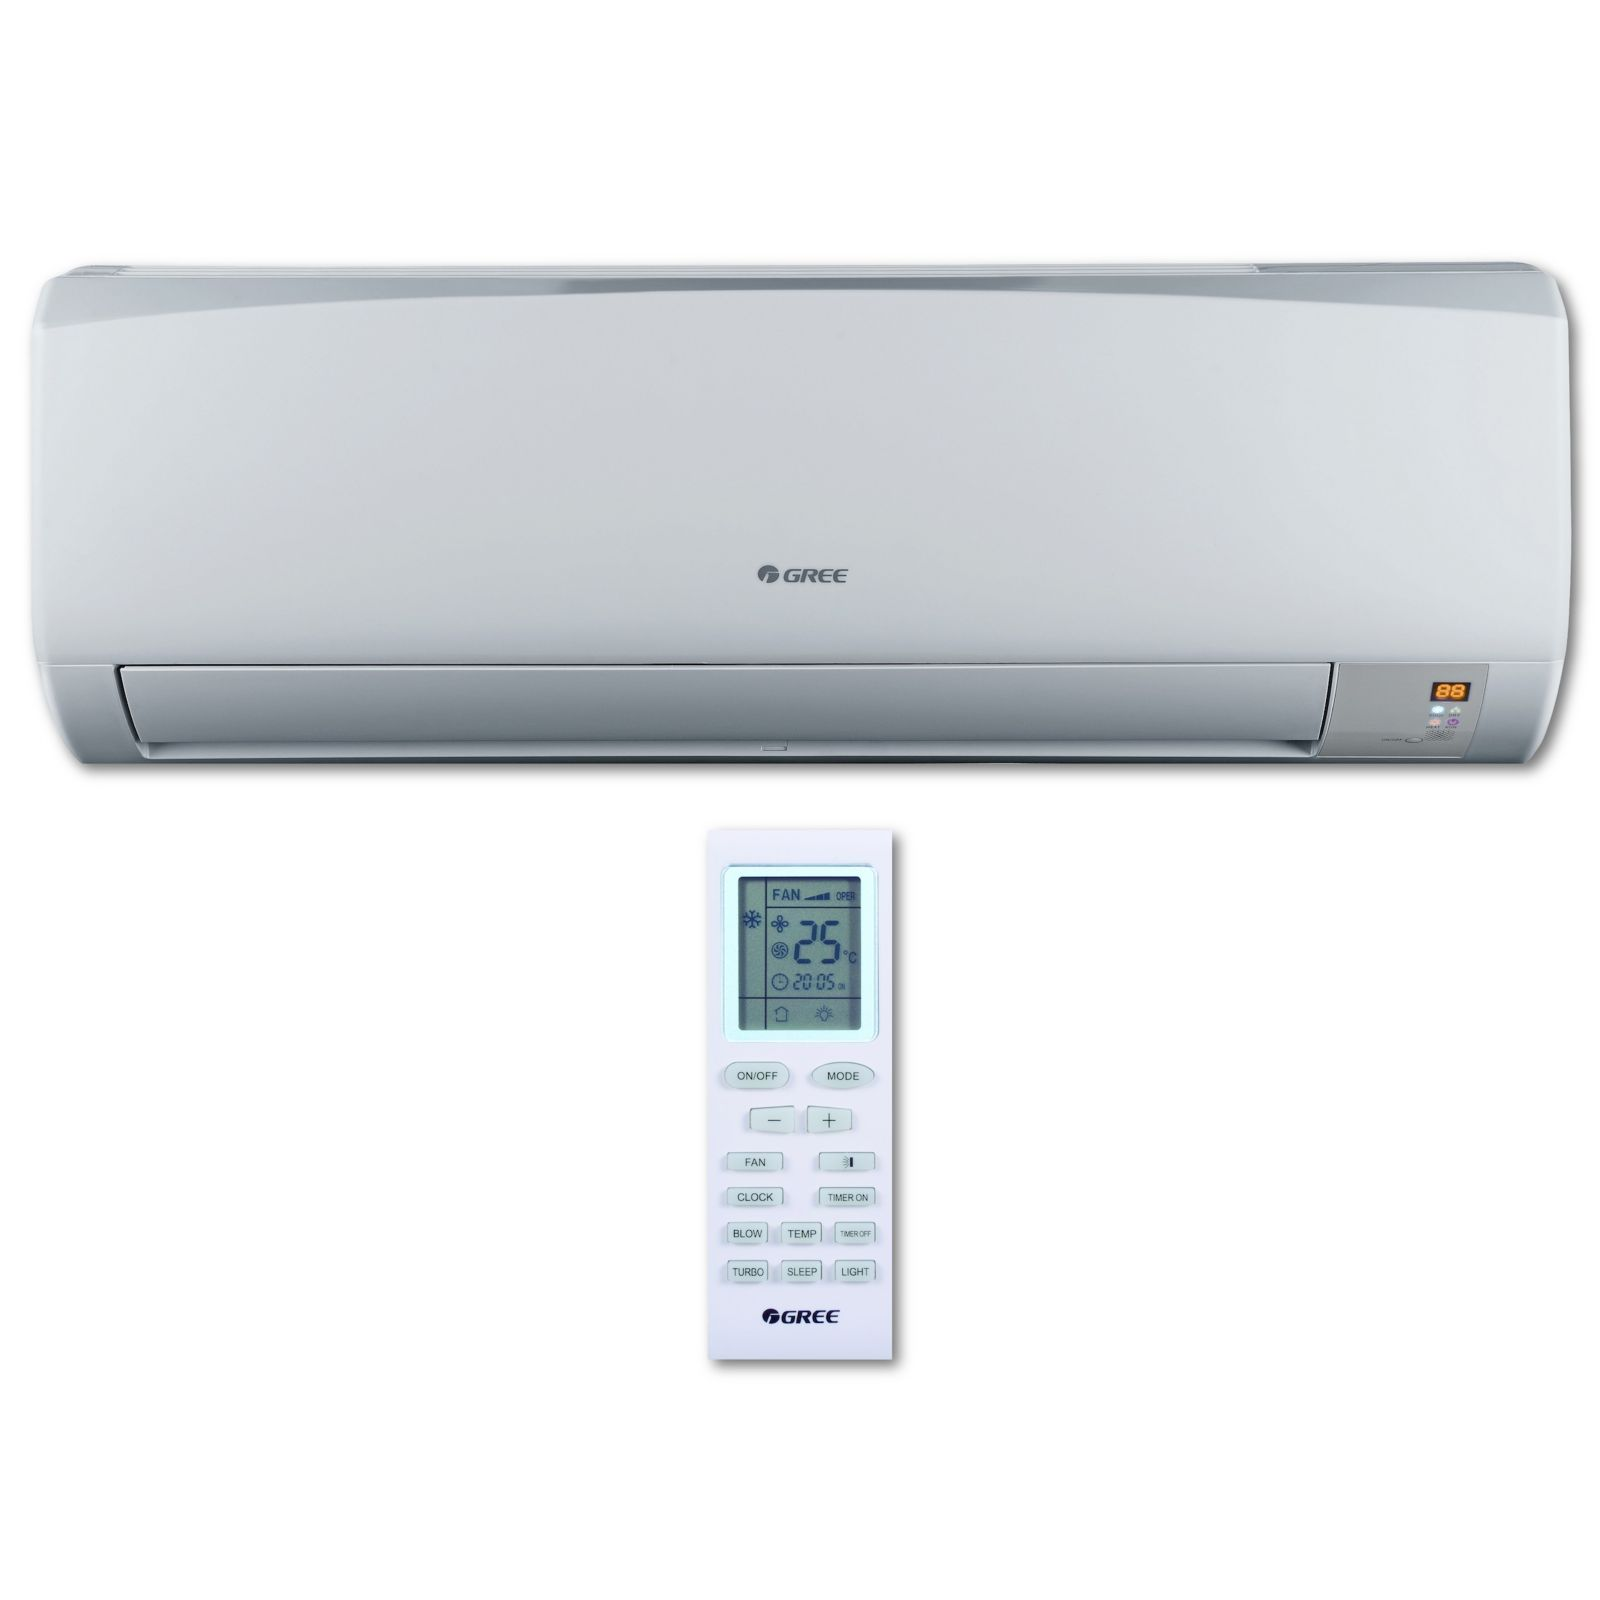 GREE RIO09HP230V1BH - 3/4 Ton, 16 SEER, 12.0 EER RIO Ductless Mini-Split Indoor Unit 208-230 V